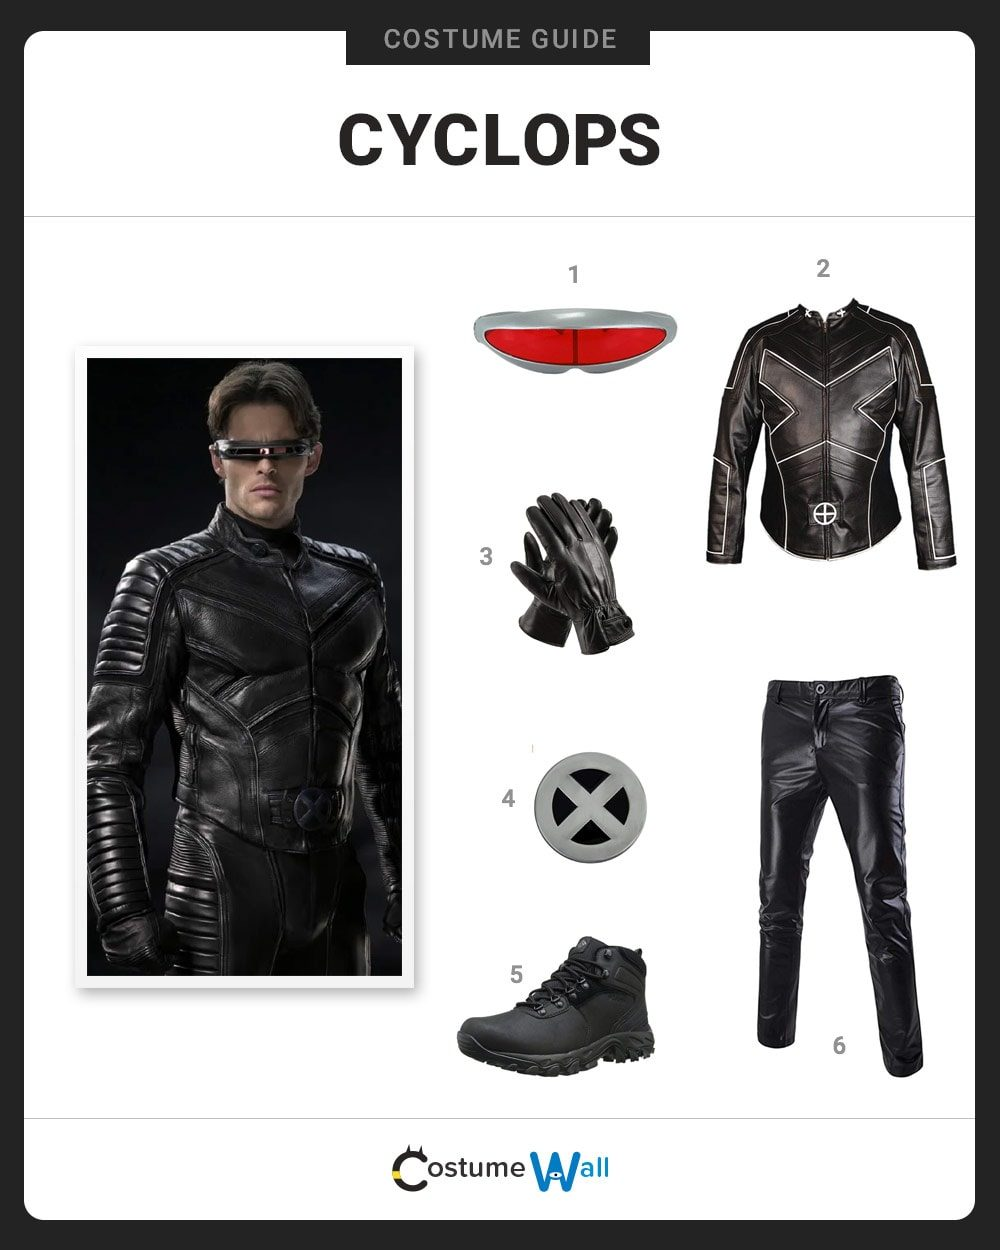 Cyclops Costume Guide